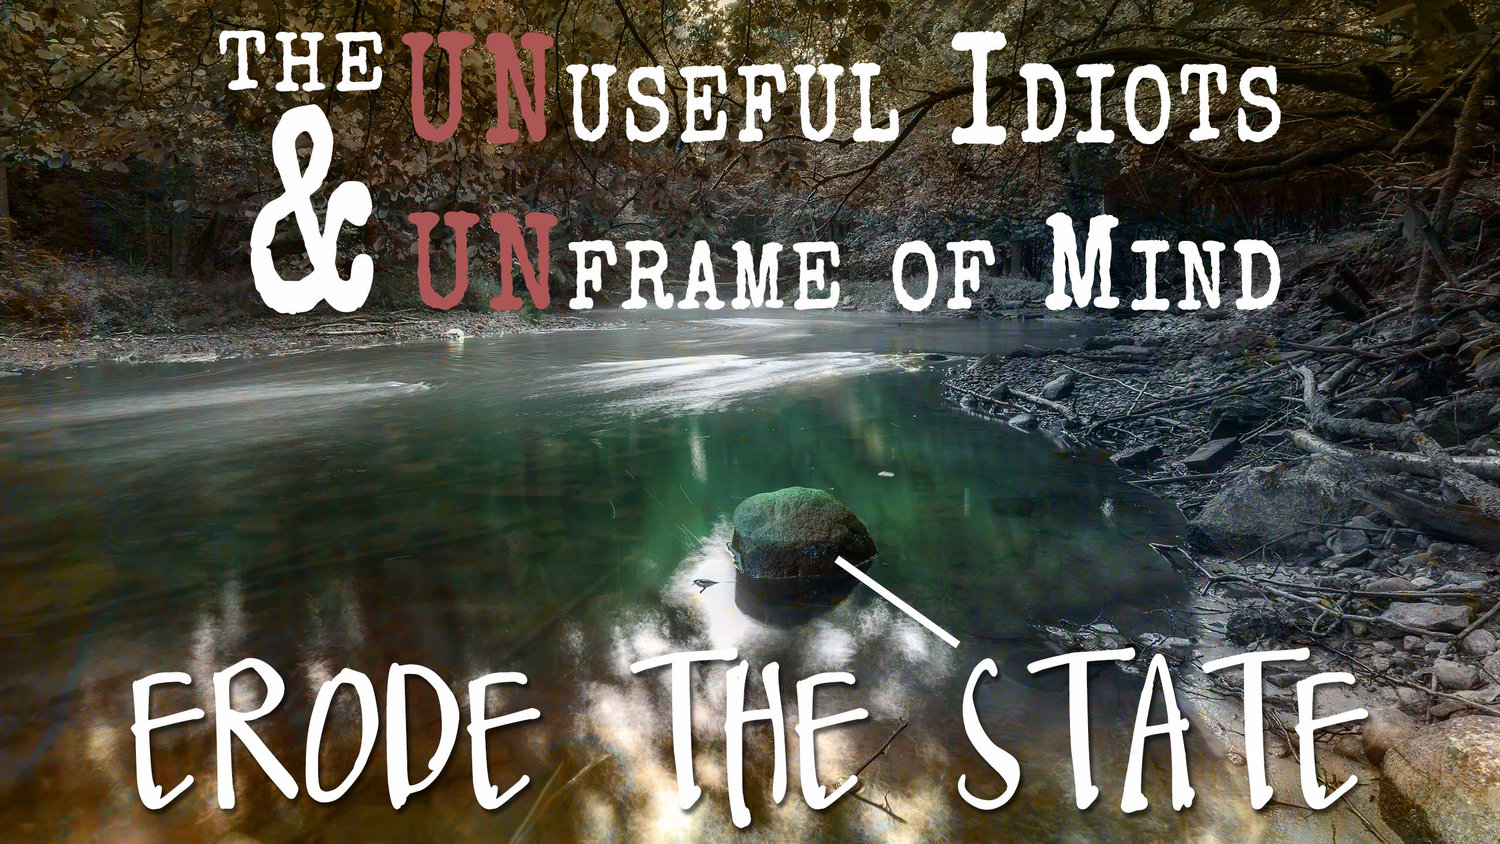 113: Eroding the State with UnUseful Idiots